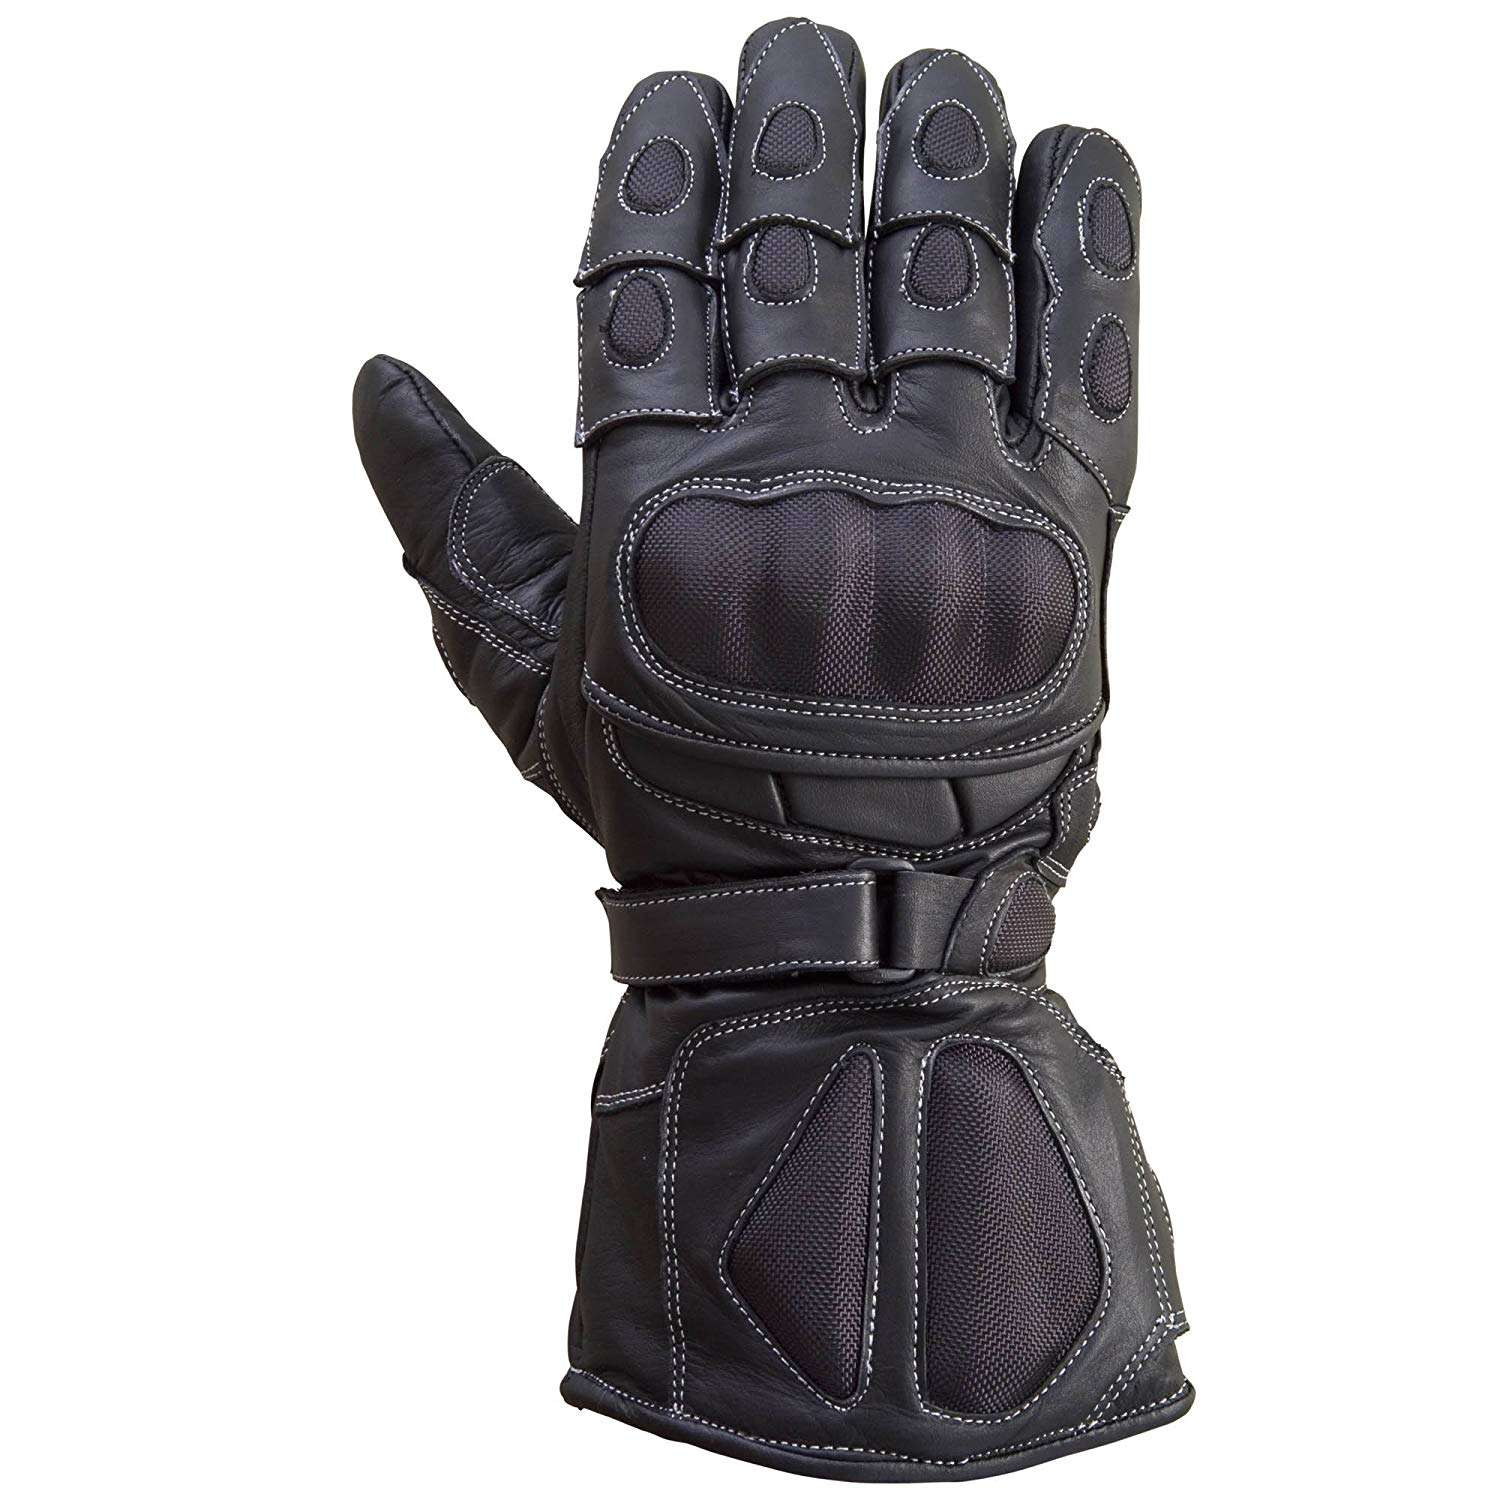 Motorcycle-Leather-Gloves-MG6